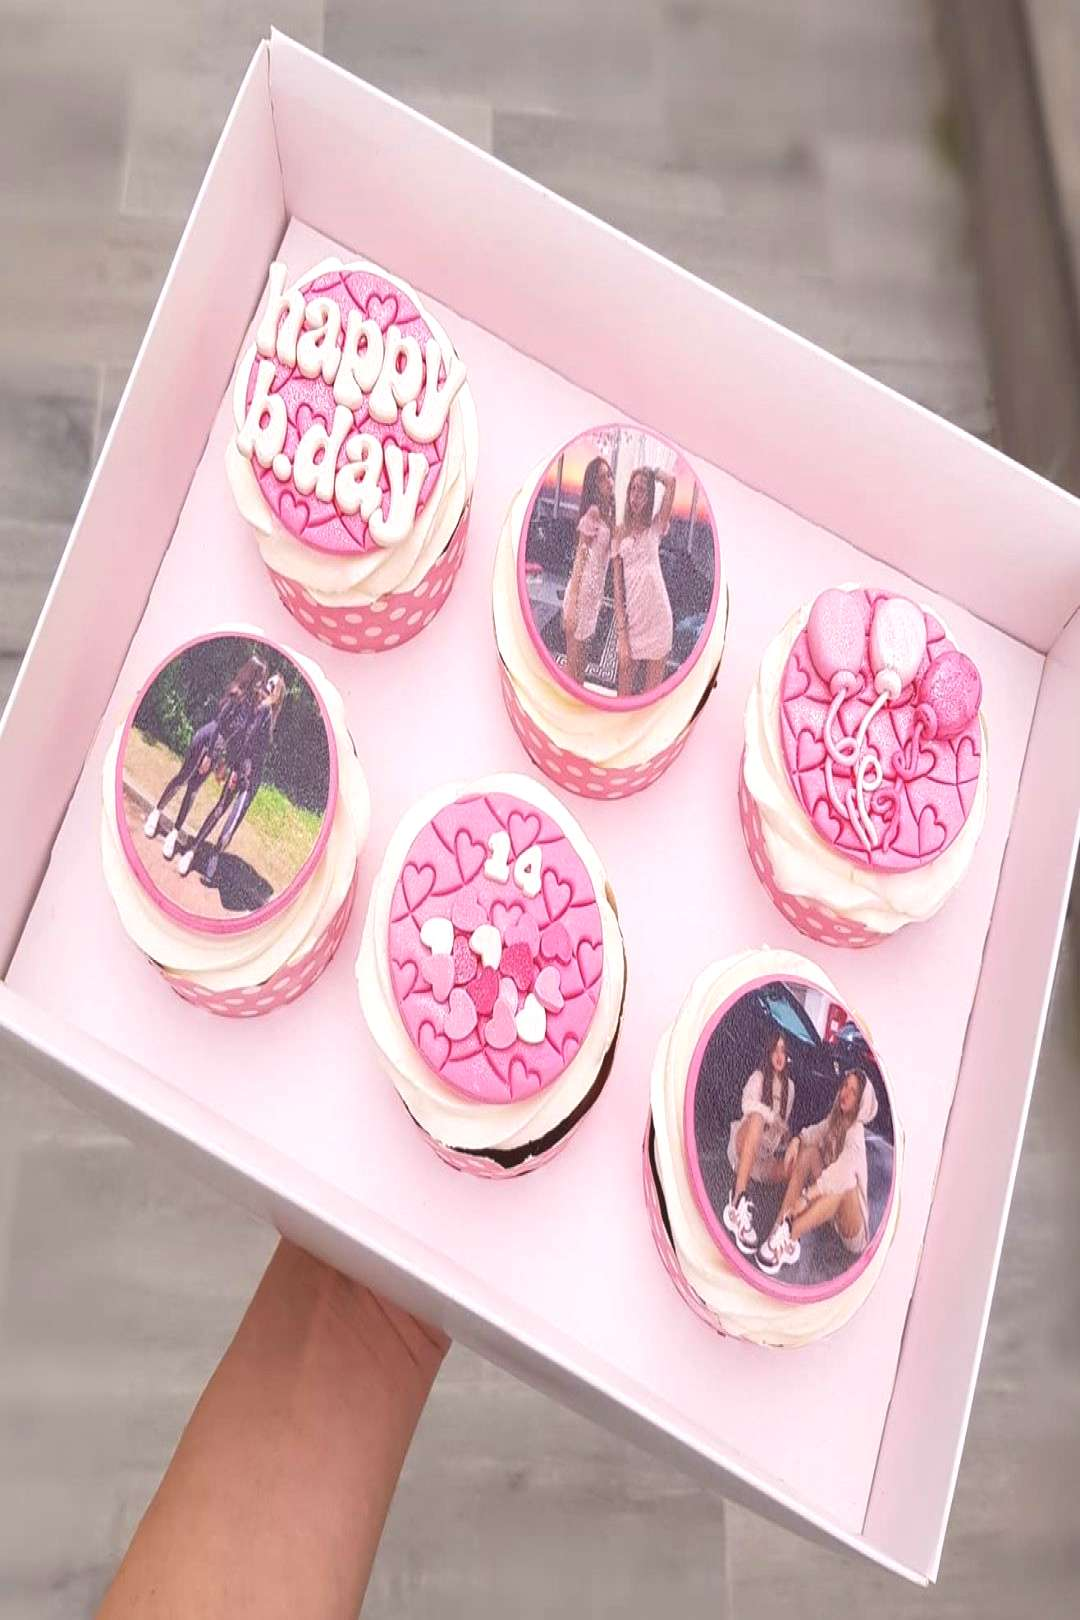 When it's your BFF's b.day . . #cupcakes #chocolatecupcakes #birt